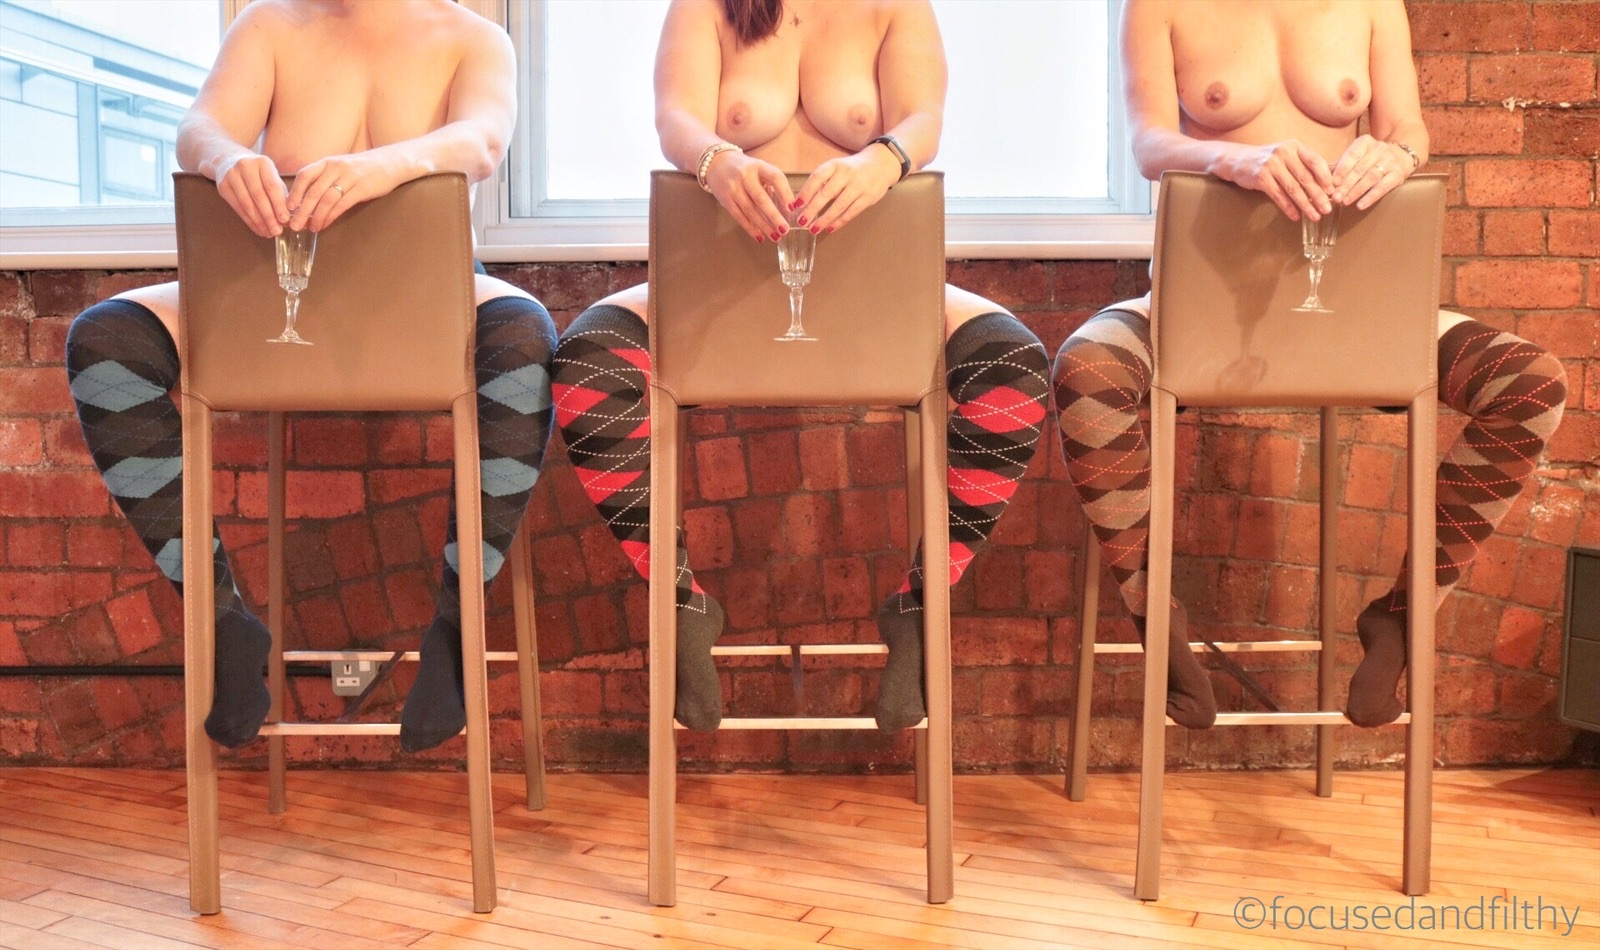 Colour photograph of three women sat on three backward bar stools against a red brick wall. They women are naked apart from long colourful argyle socks and they are each holding a champagne flute in the middle.